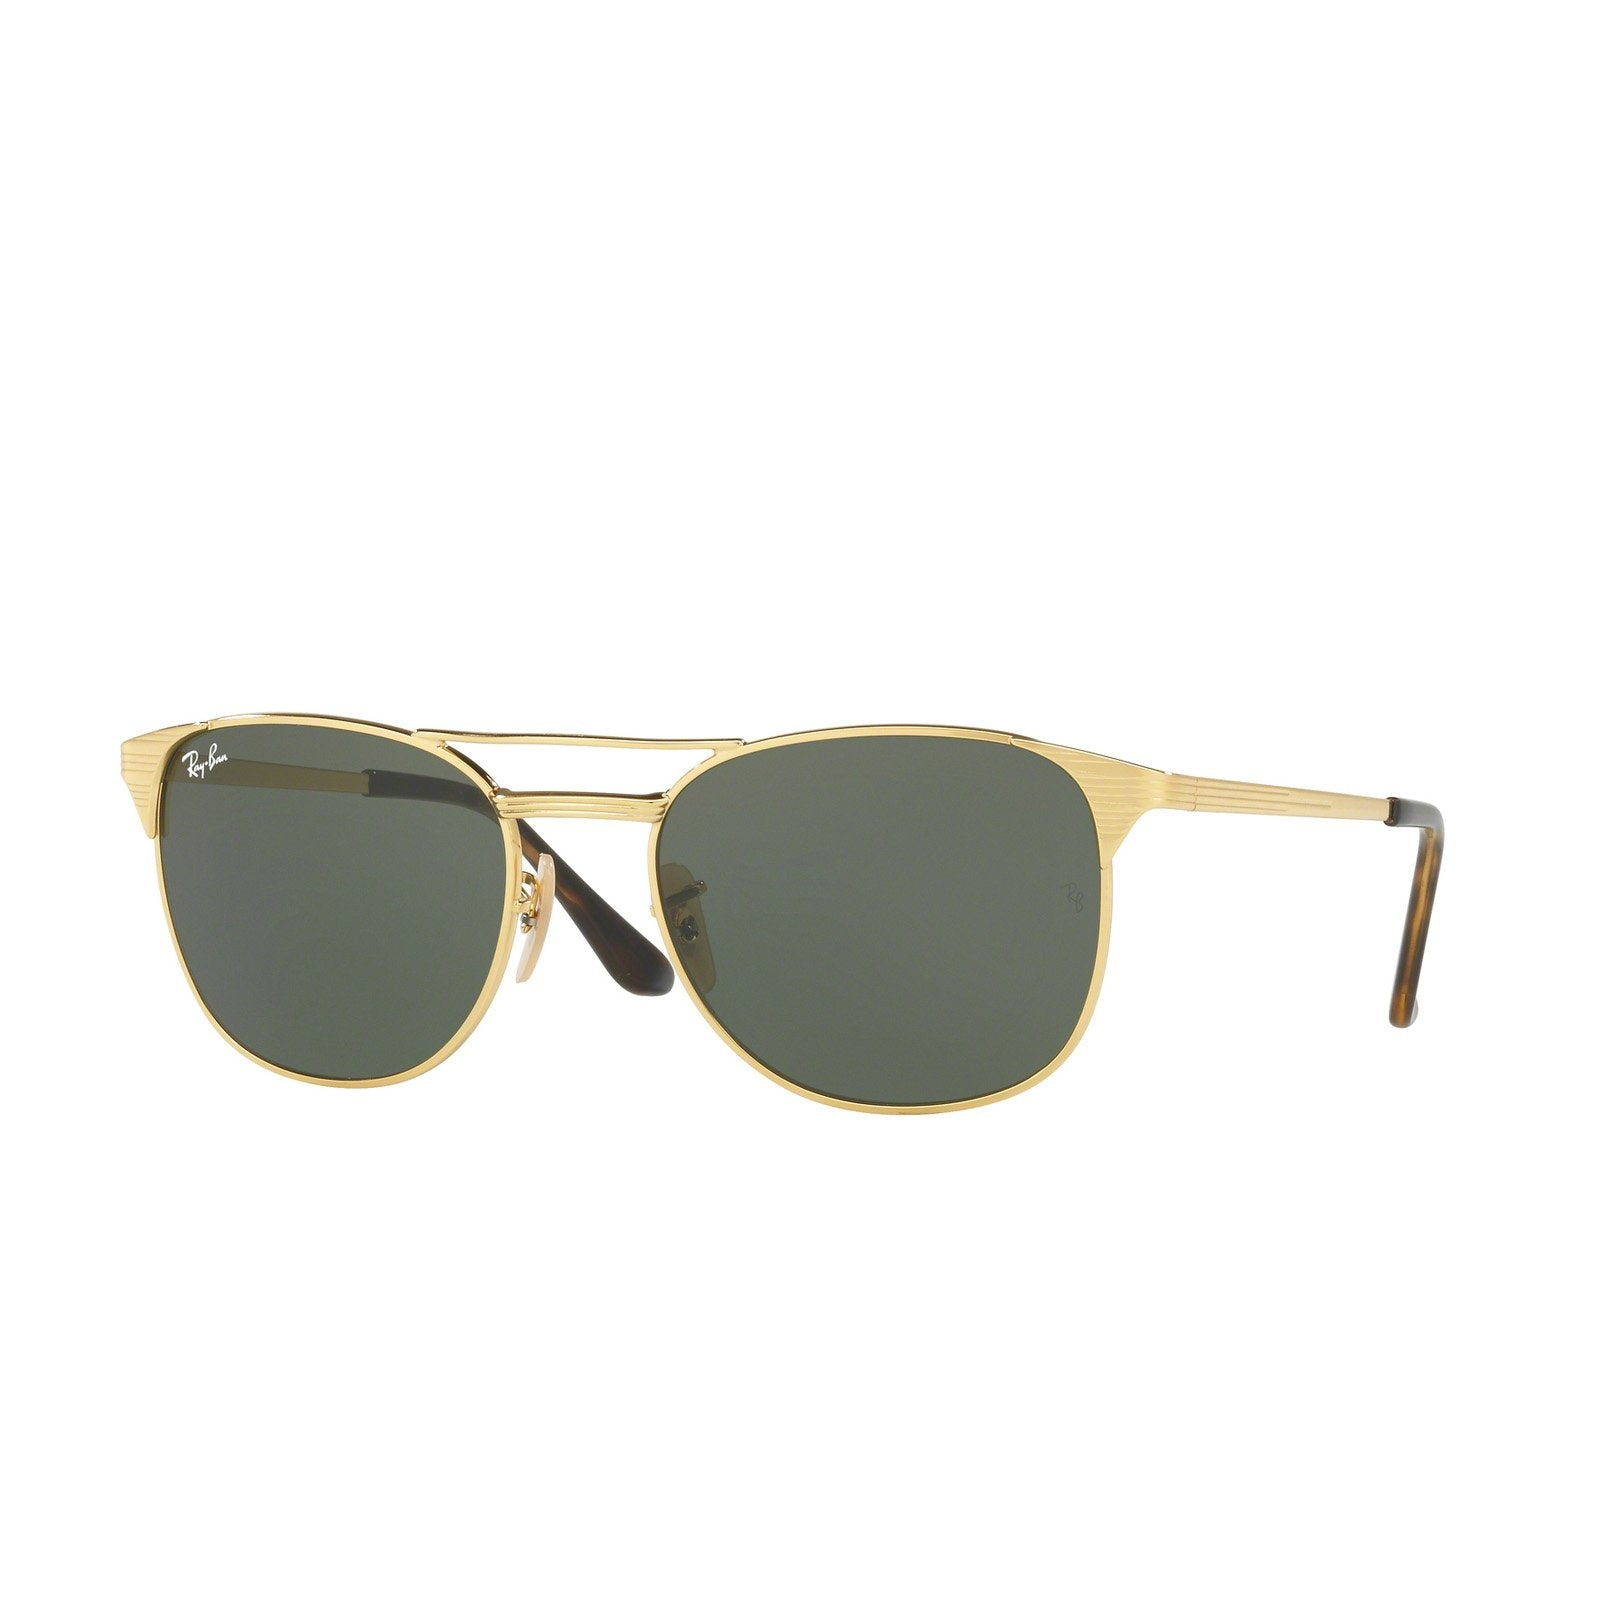 Ray-Ban RB3429M 001 Sunglasses